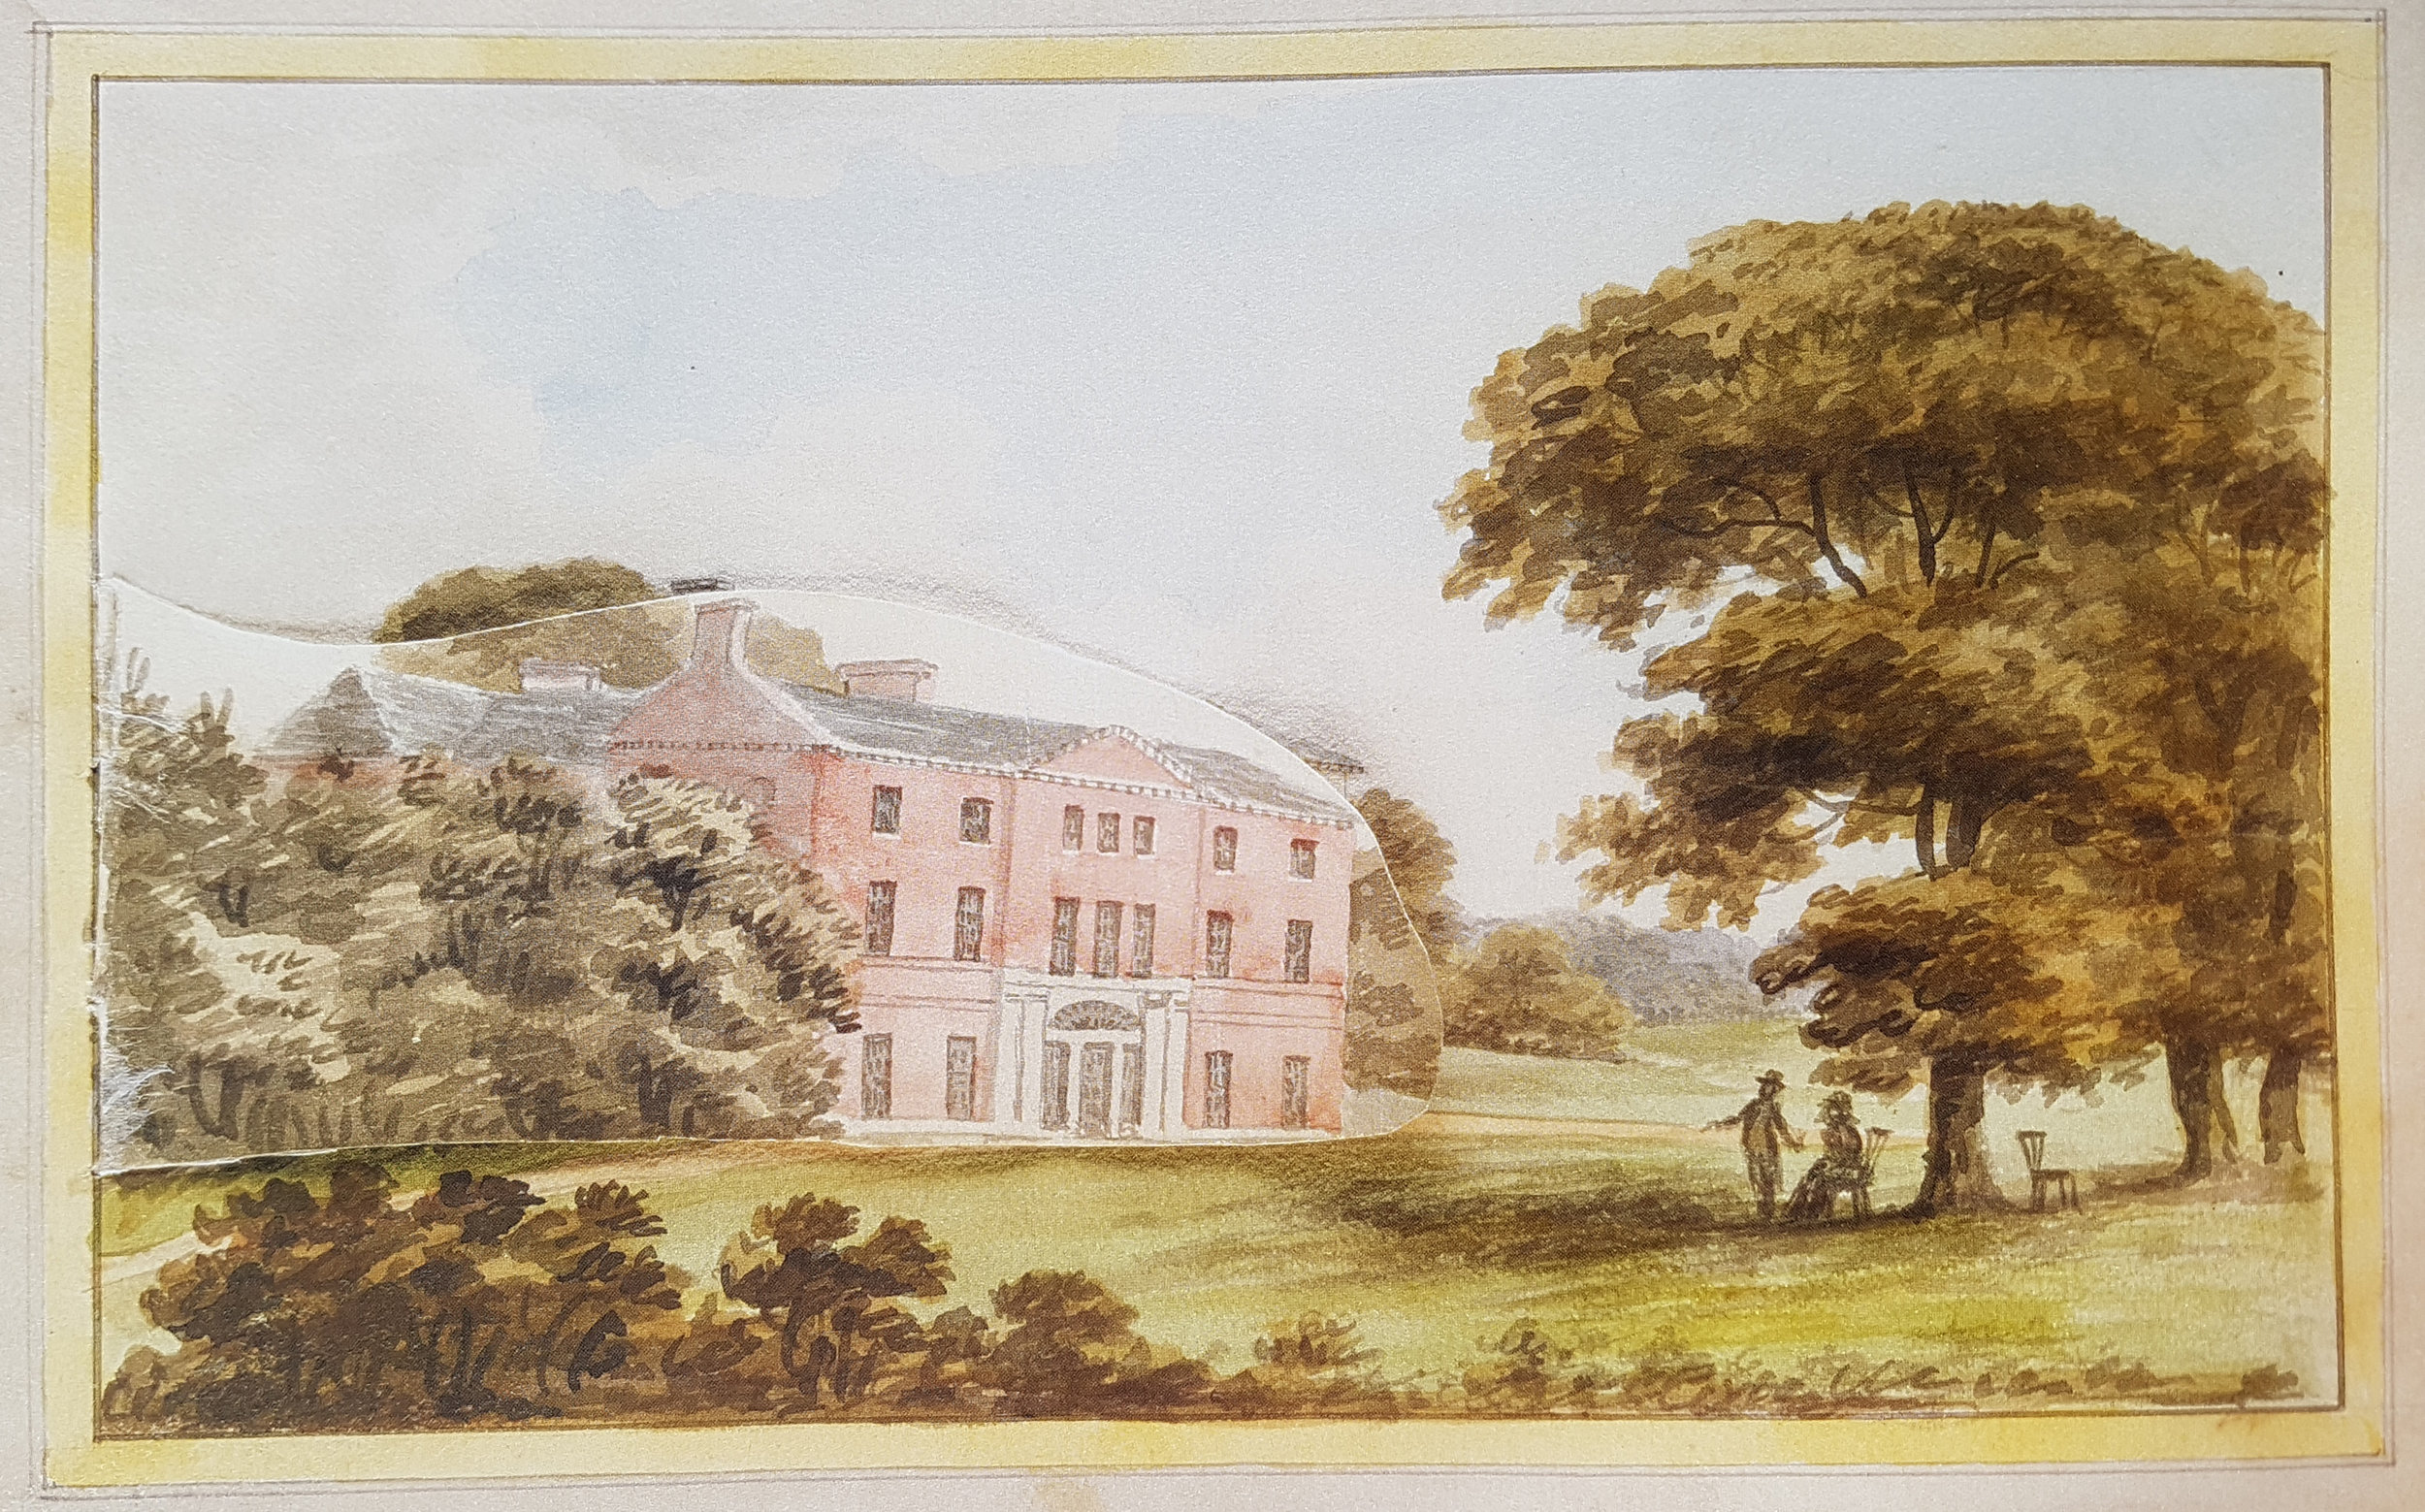 Painting of Hatchlands from Humphry Repton's 'Red book' showing the house before his suggested improvements 1800